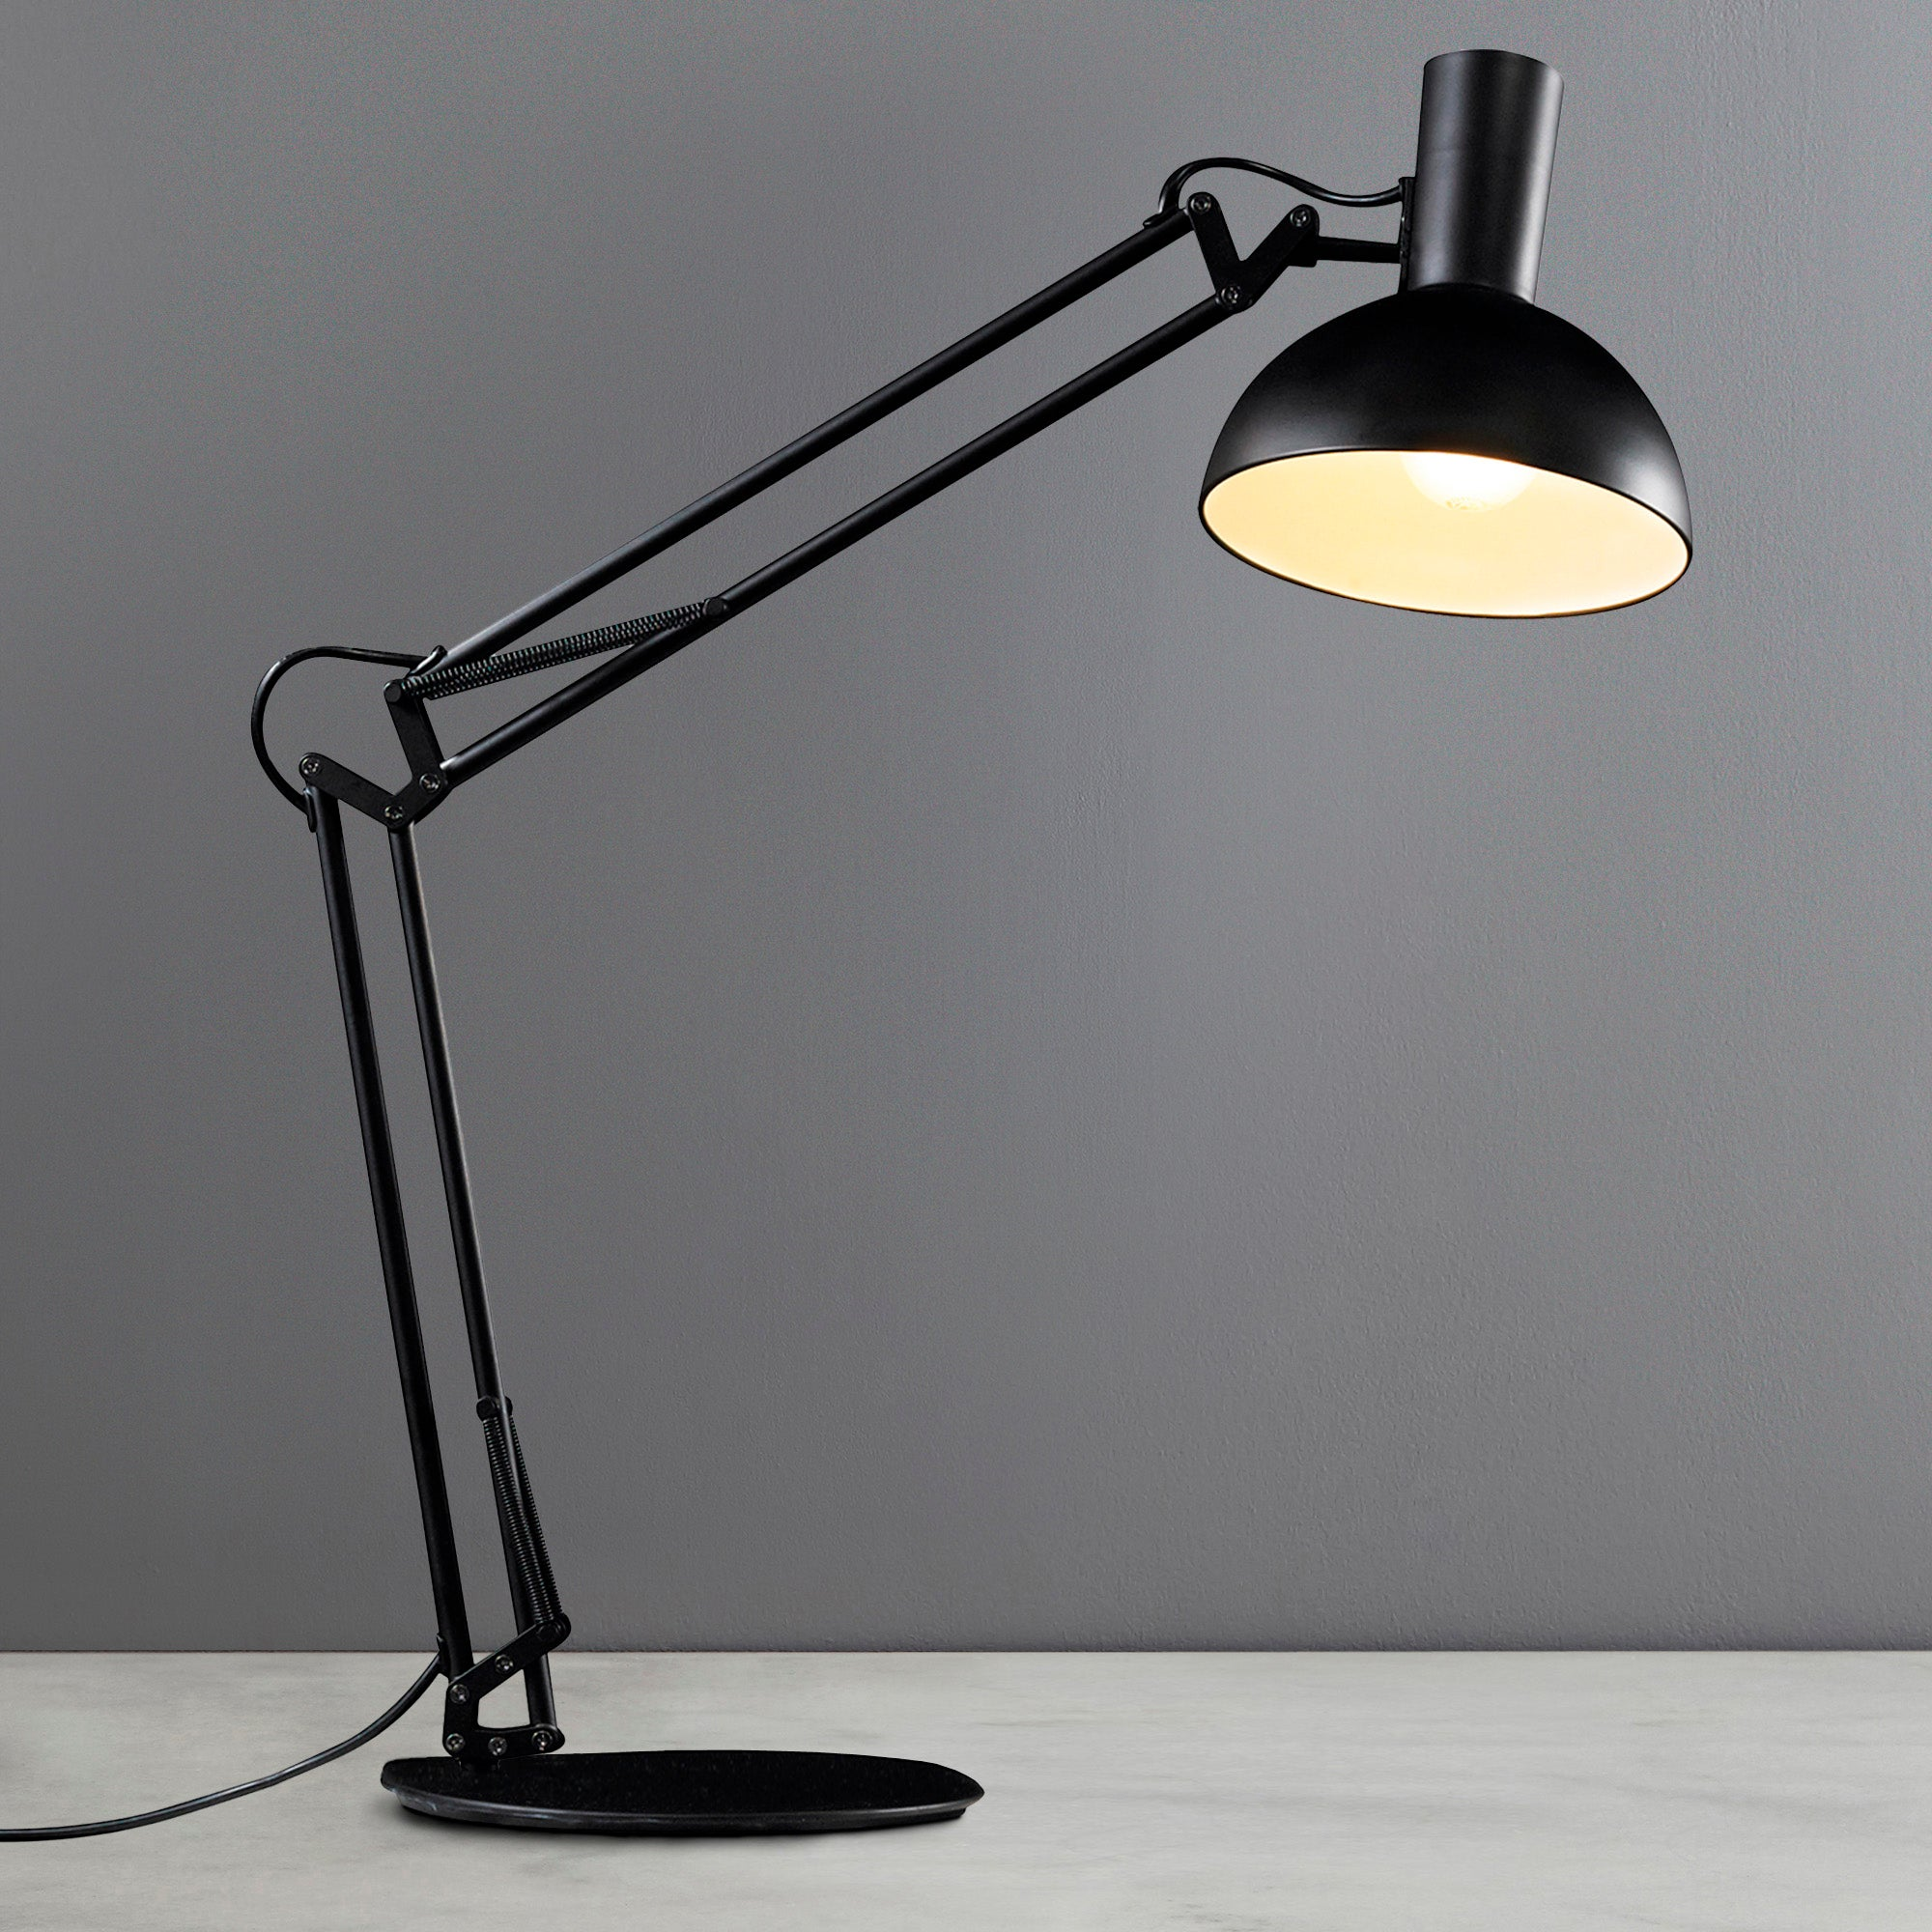 Image of Arki Black Table Clamp Wall Lamp Black